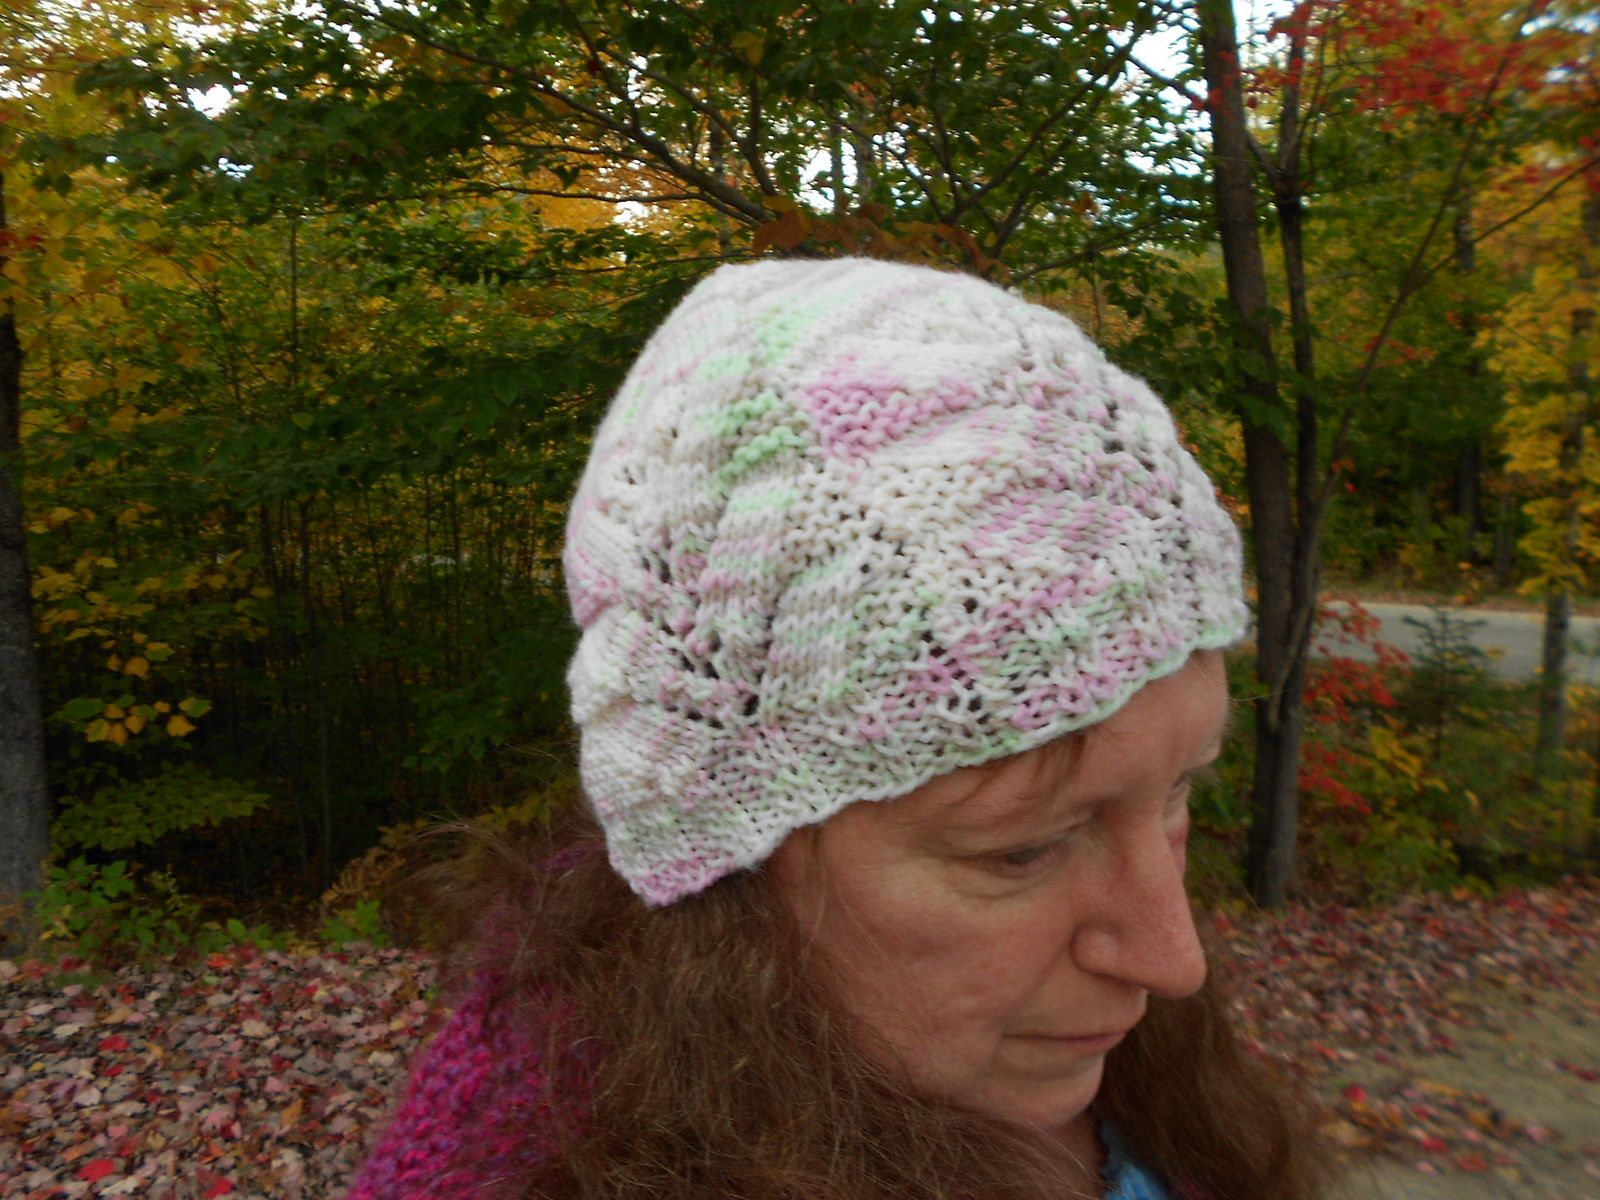 Comfy Soft Chemo Hat pattern by Melody Hadley | Ravelry, Knitting ...